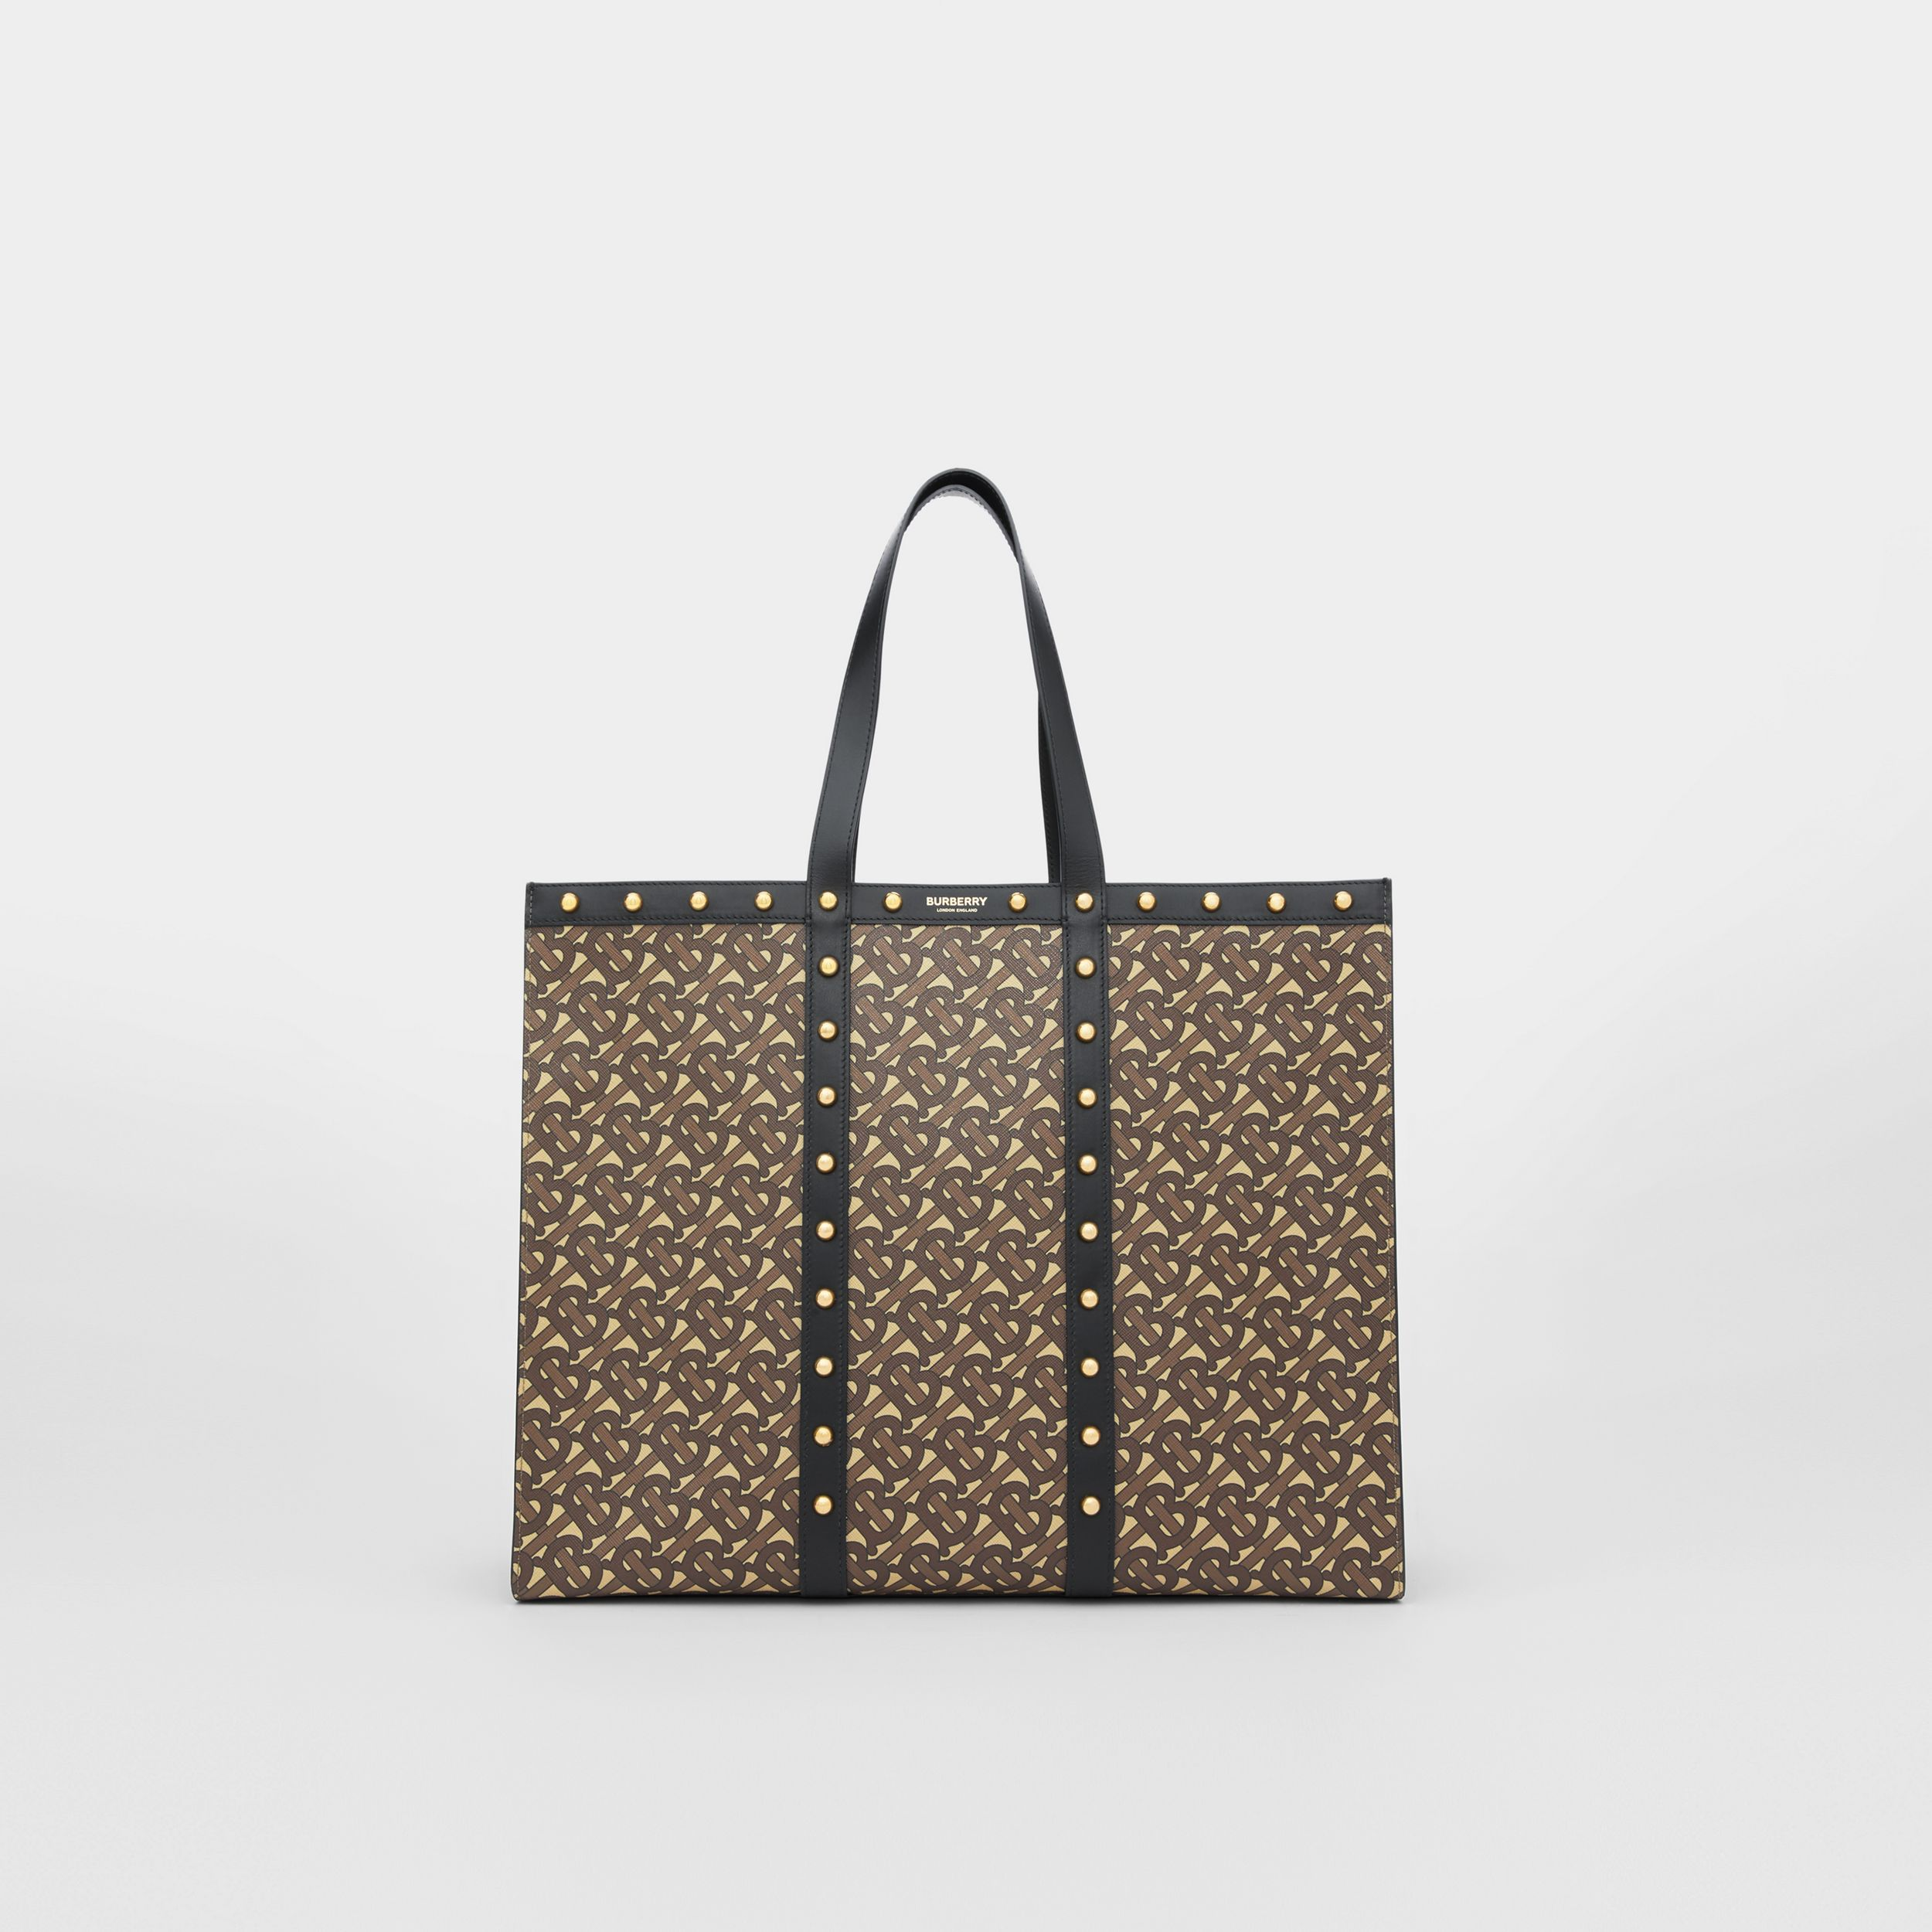 Monogram Print E-canvas Tote Bag in Black | Burberry - 1